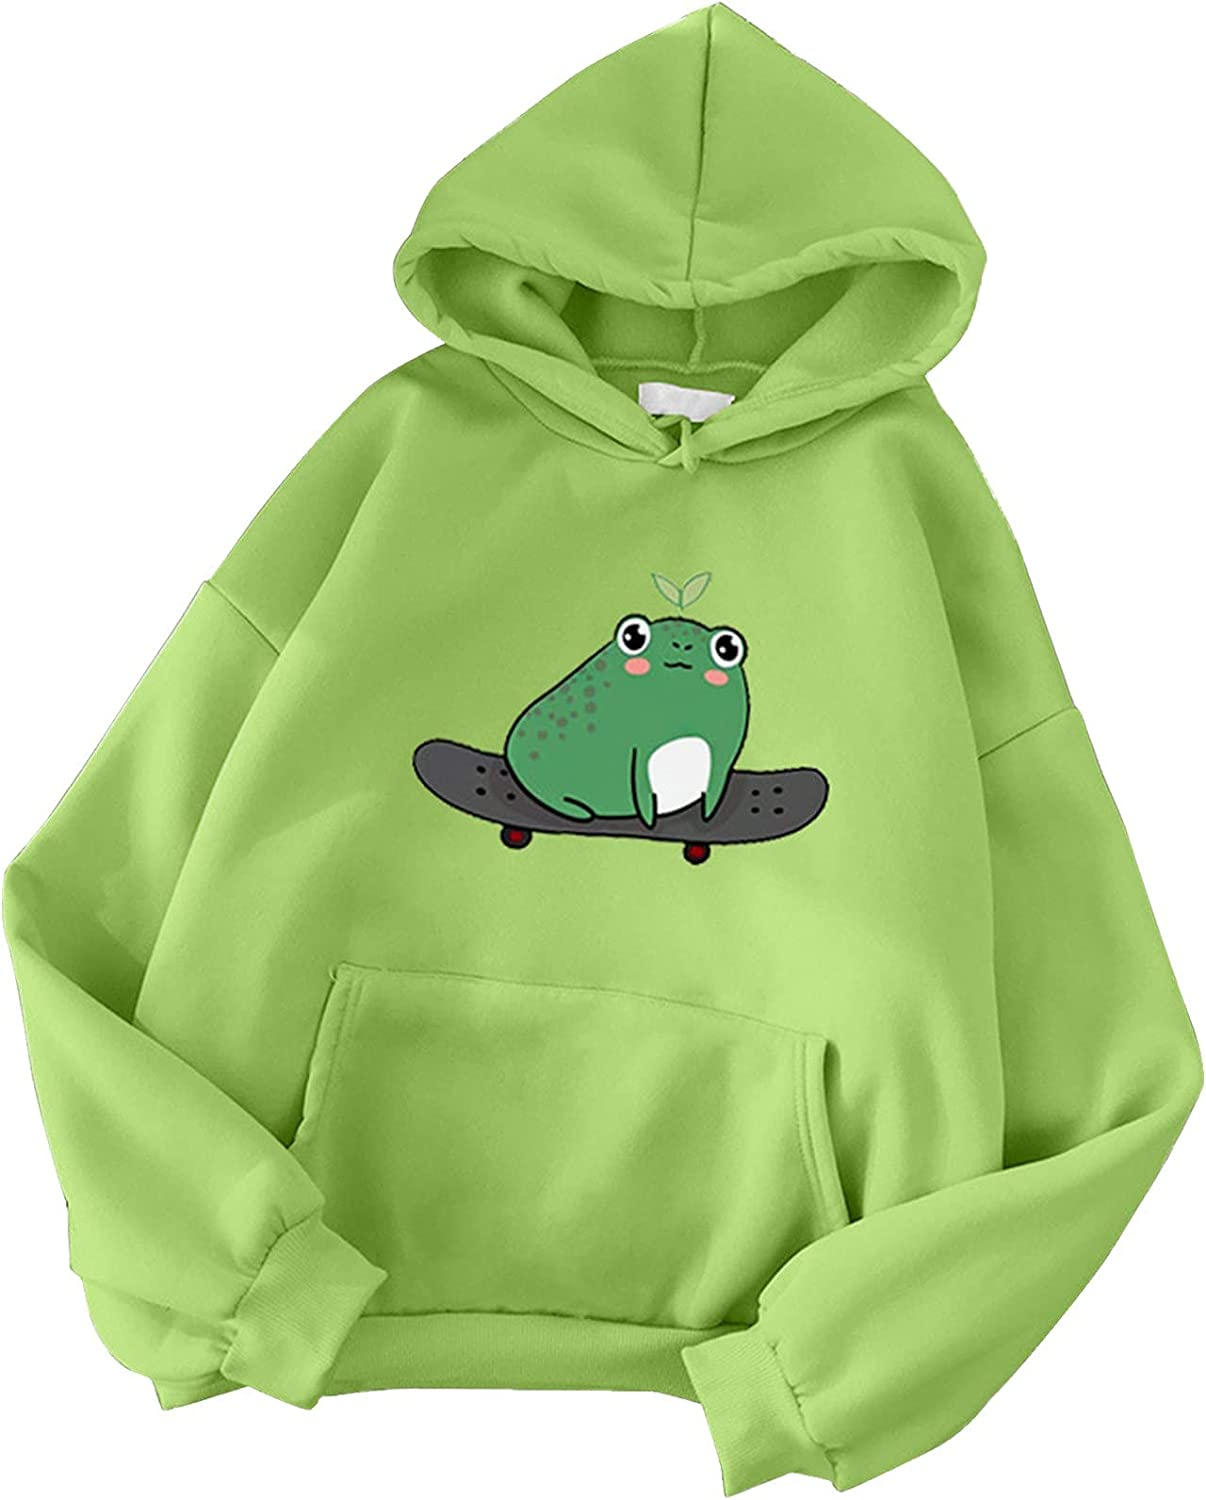 MASZONE Hoodies for Women Pullover Design Frog Hoodie Tops with Pockets Drawstring Sweatshirt Long Sleeve Blouses